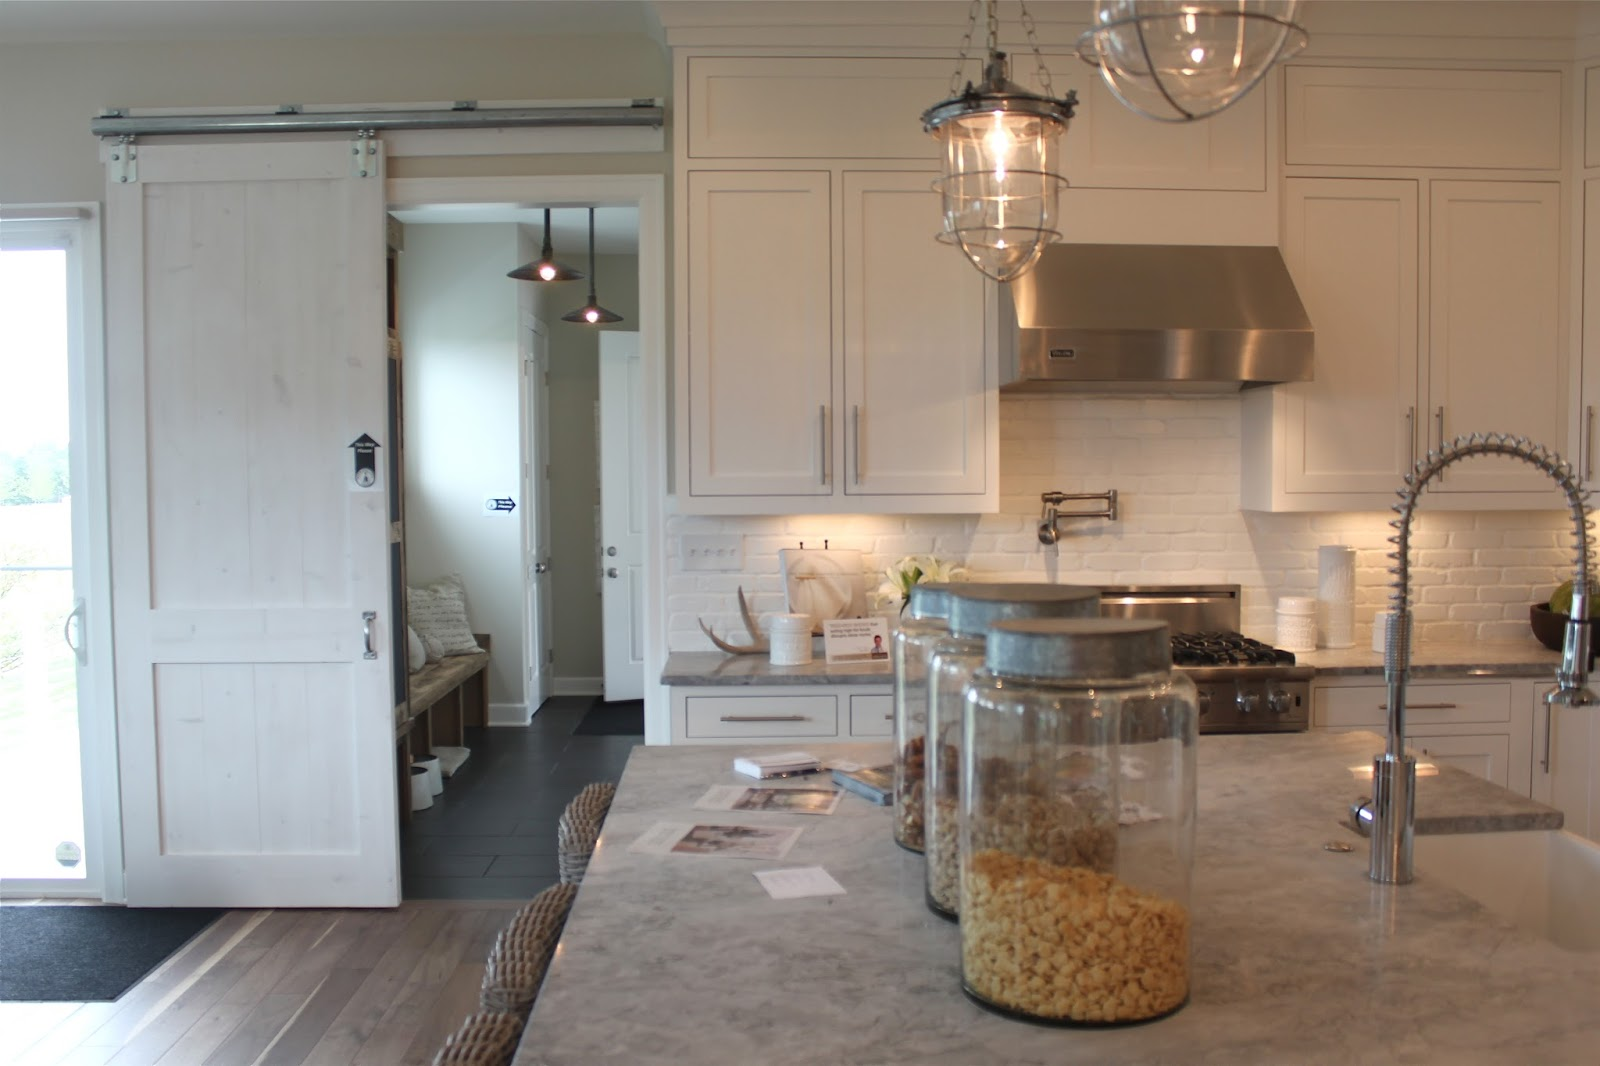 The Fat Hydrangea Parade Of Homes House 2 Favorite: house beautiful kitchen of the year 2013